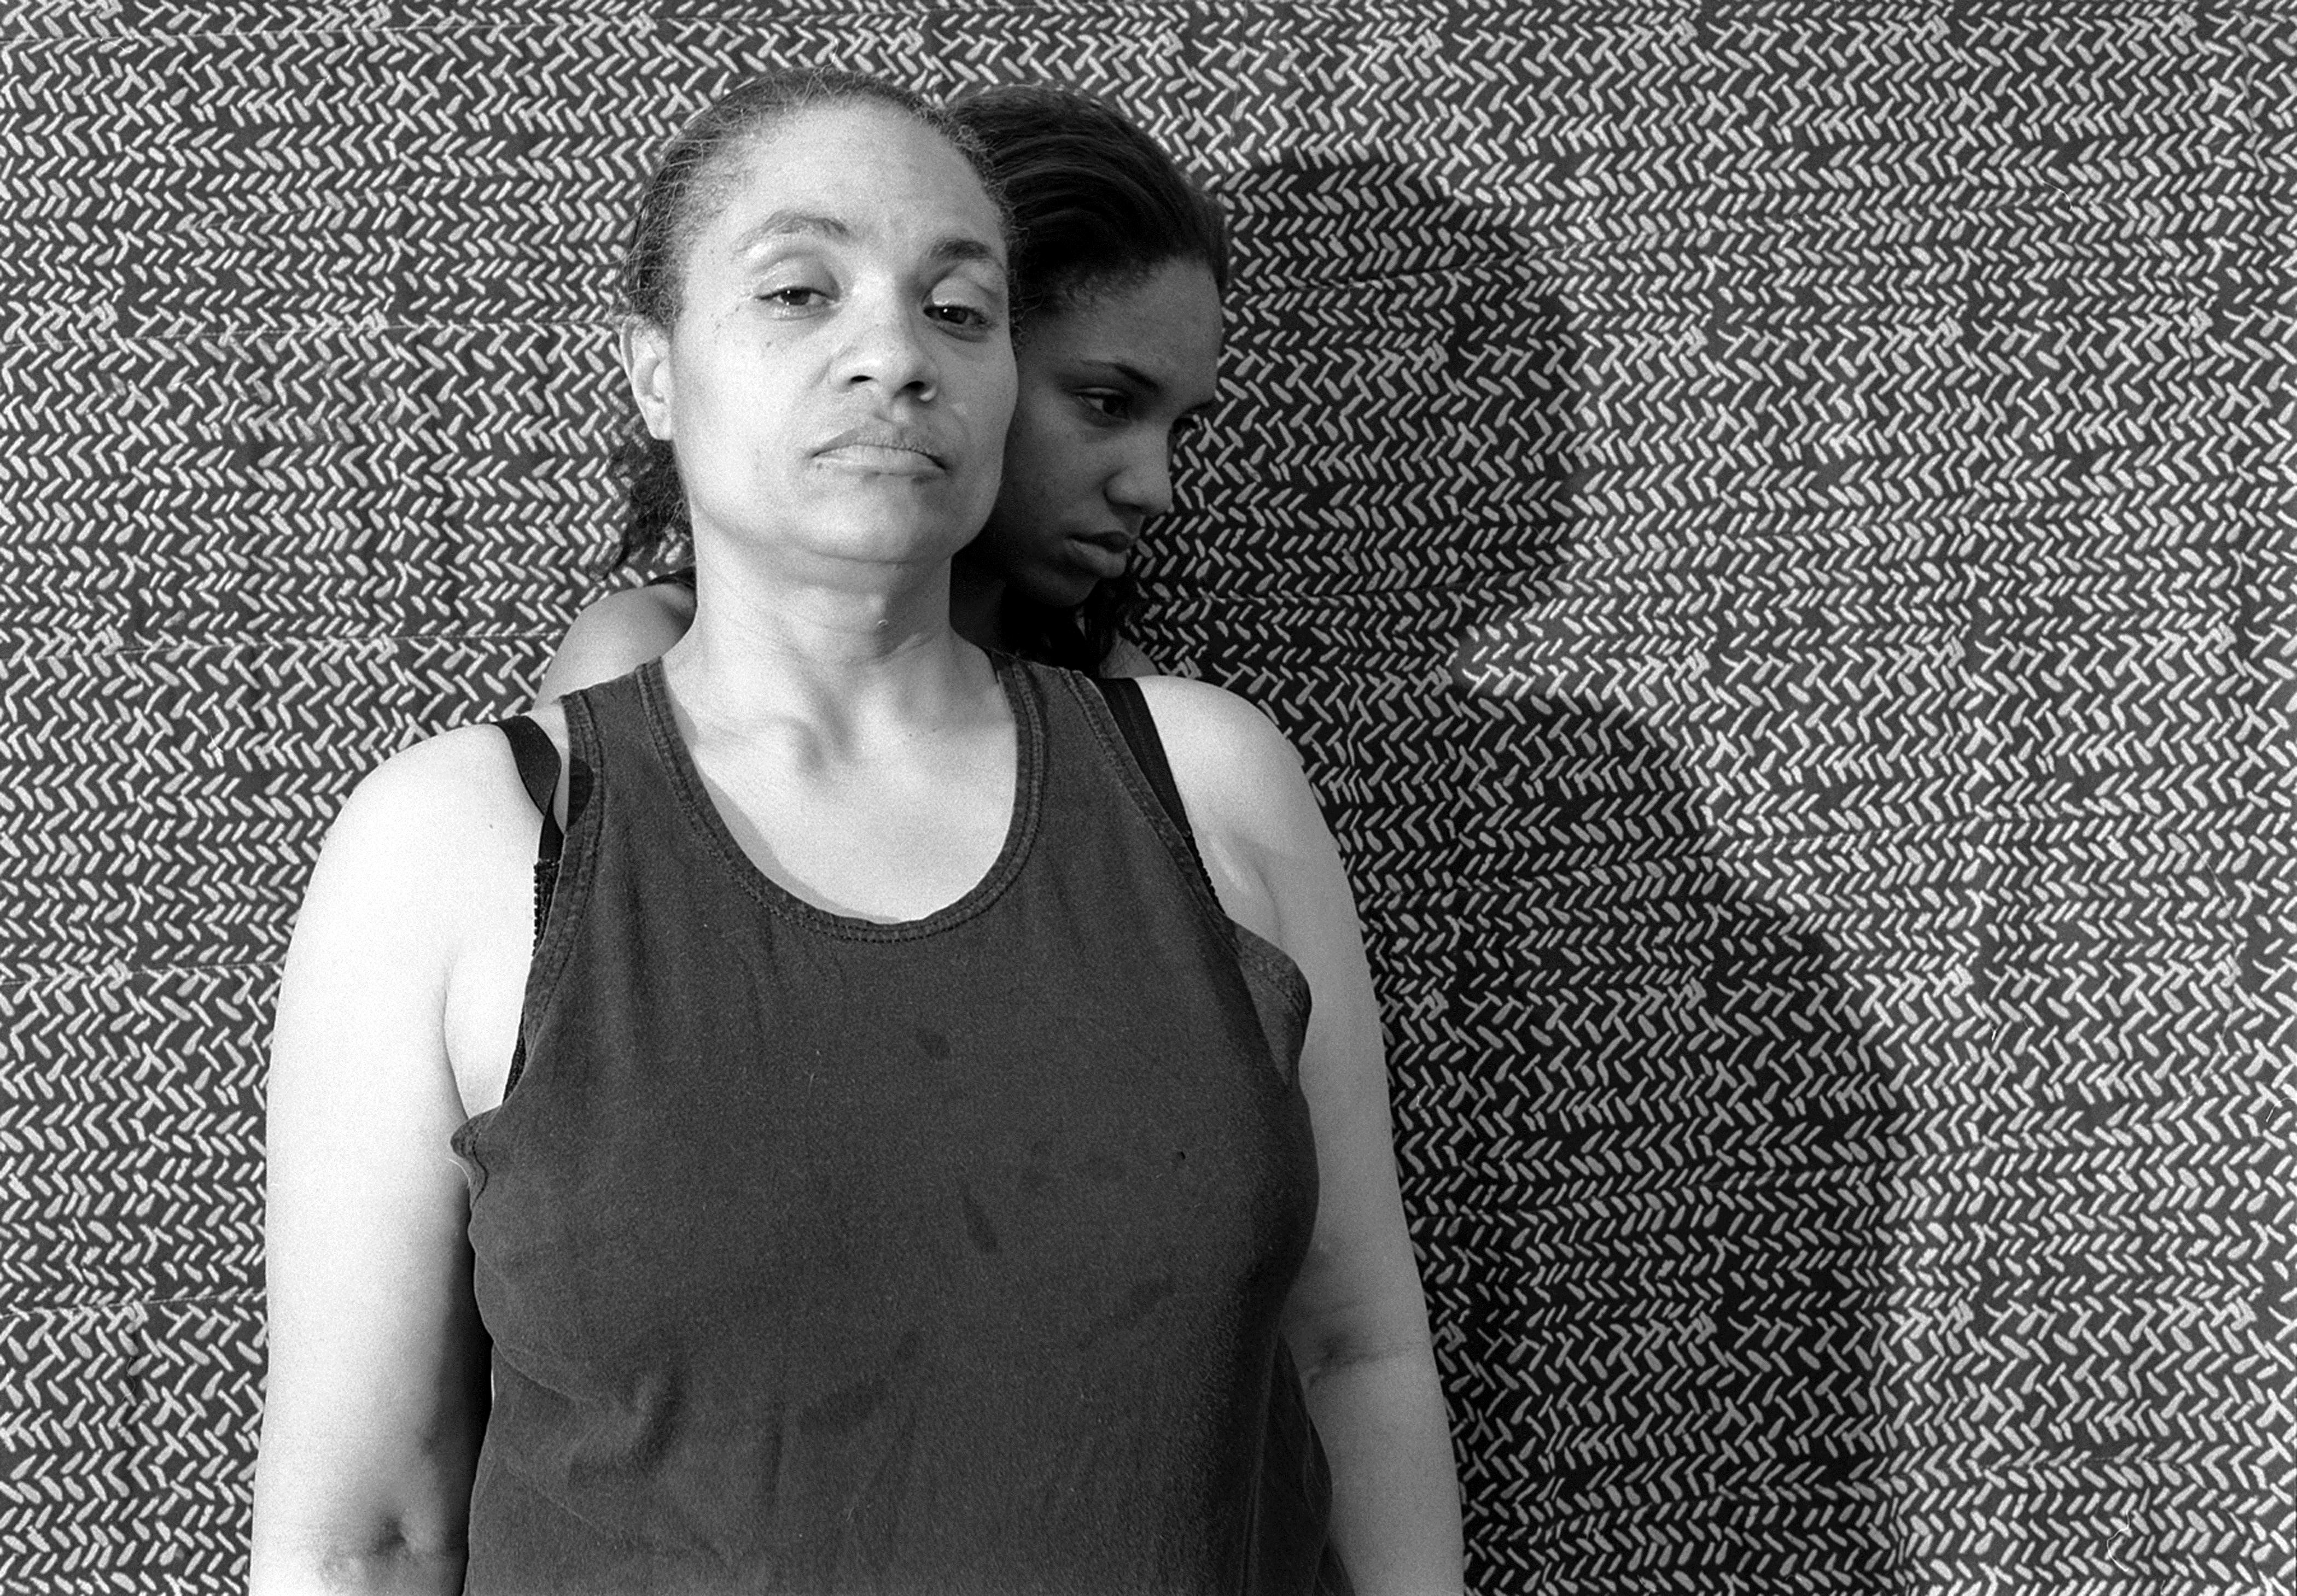 Momme Portrait Series (Shadow) 2008, Photo: LaToya Ruby Frazier